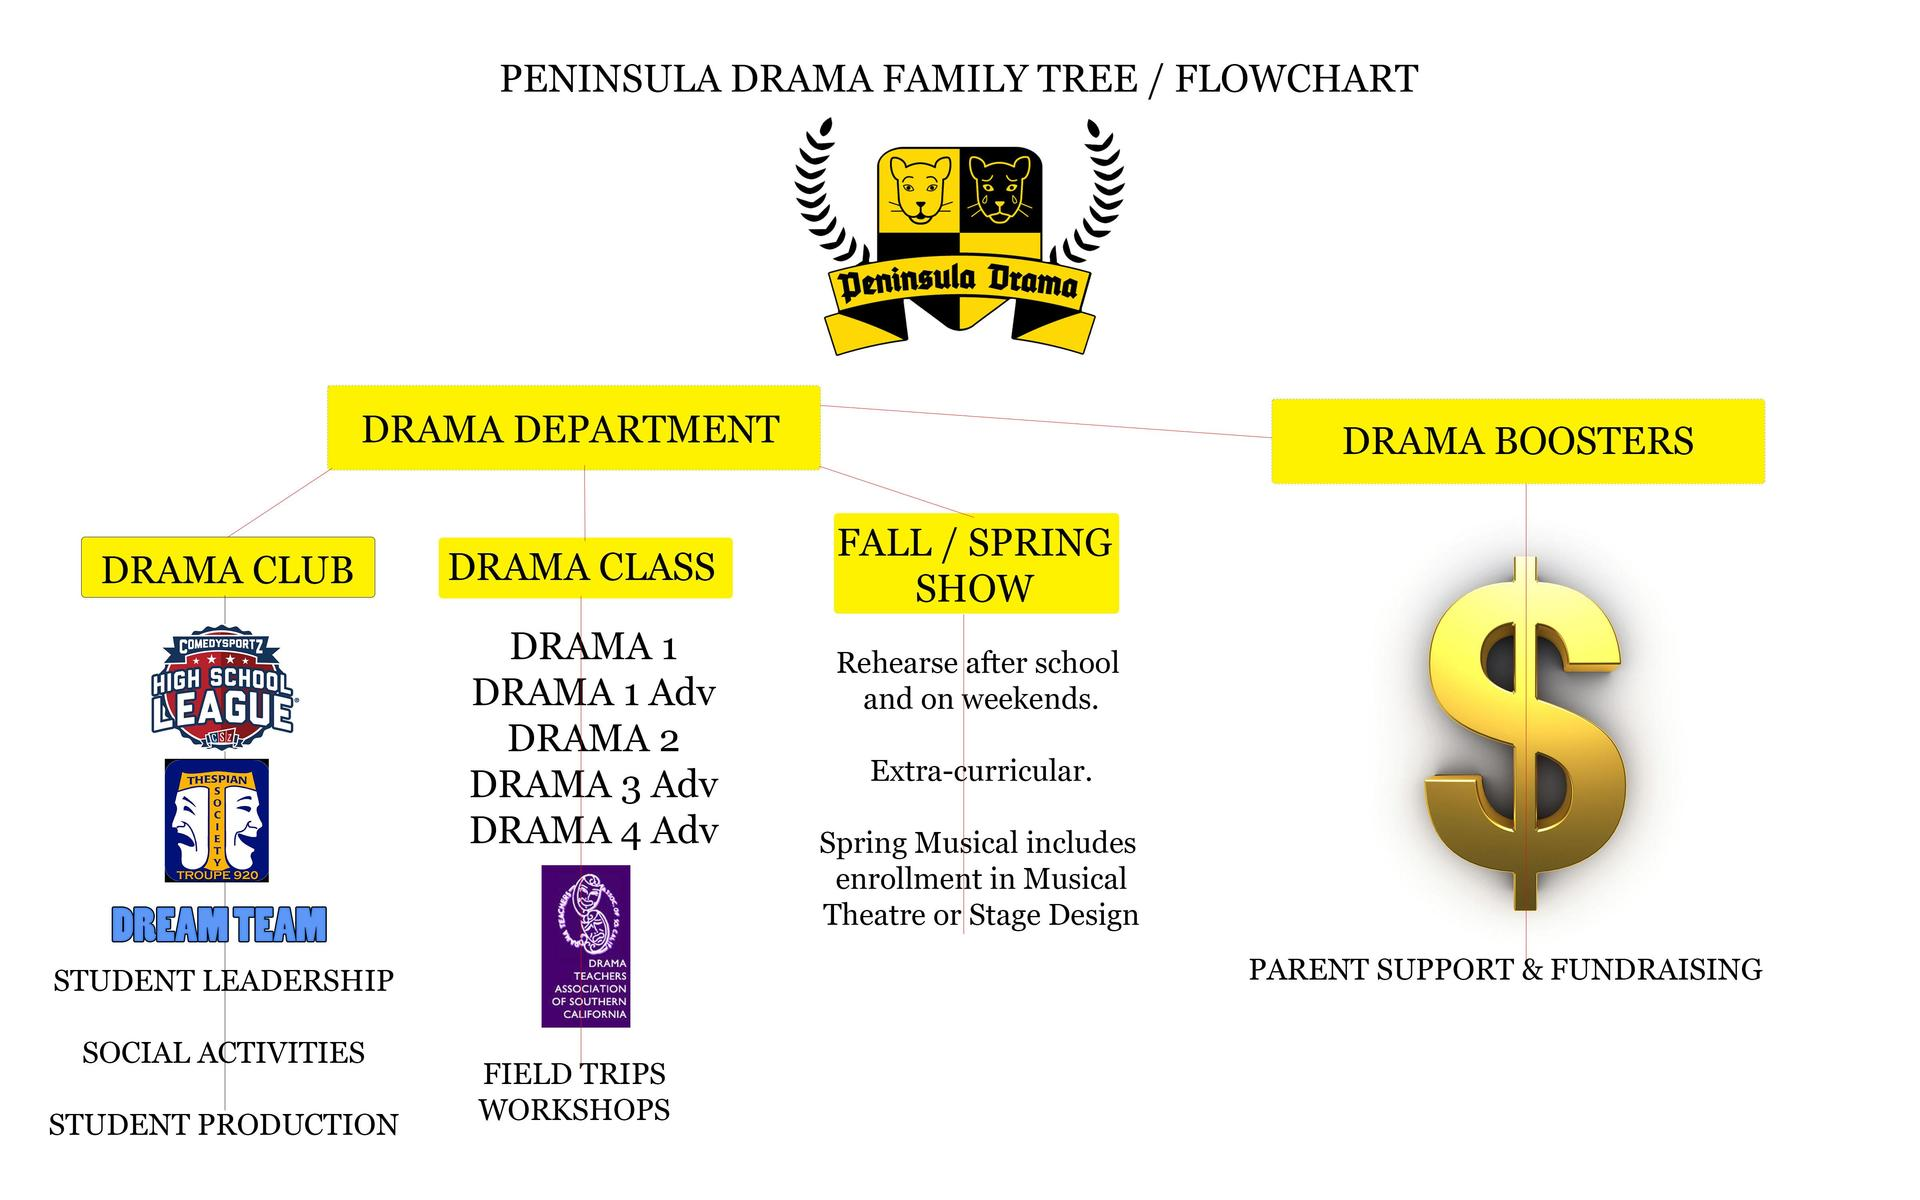 Drama Department = Club / Class / Production Activities; Drama Boosters = Fundraising and Parent Volunteerism